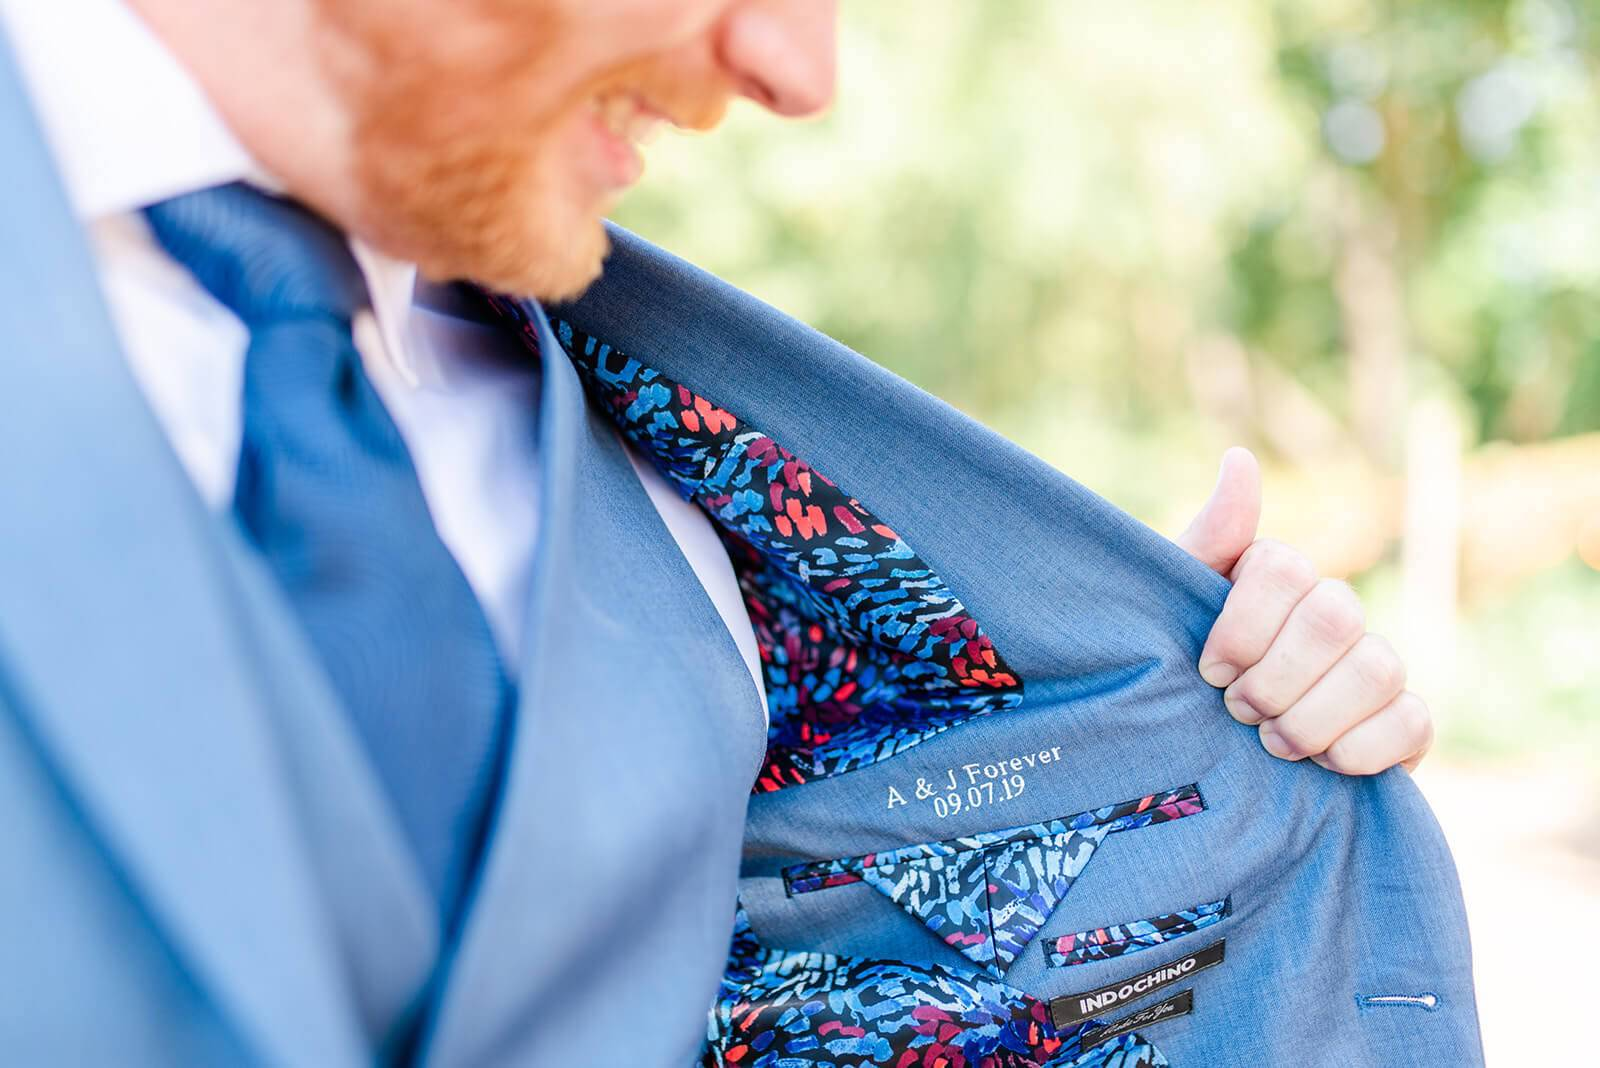 groom's suit with embroidery